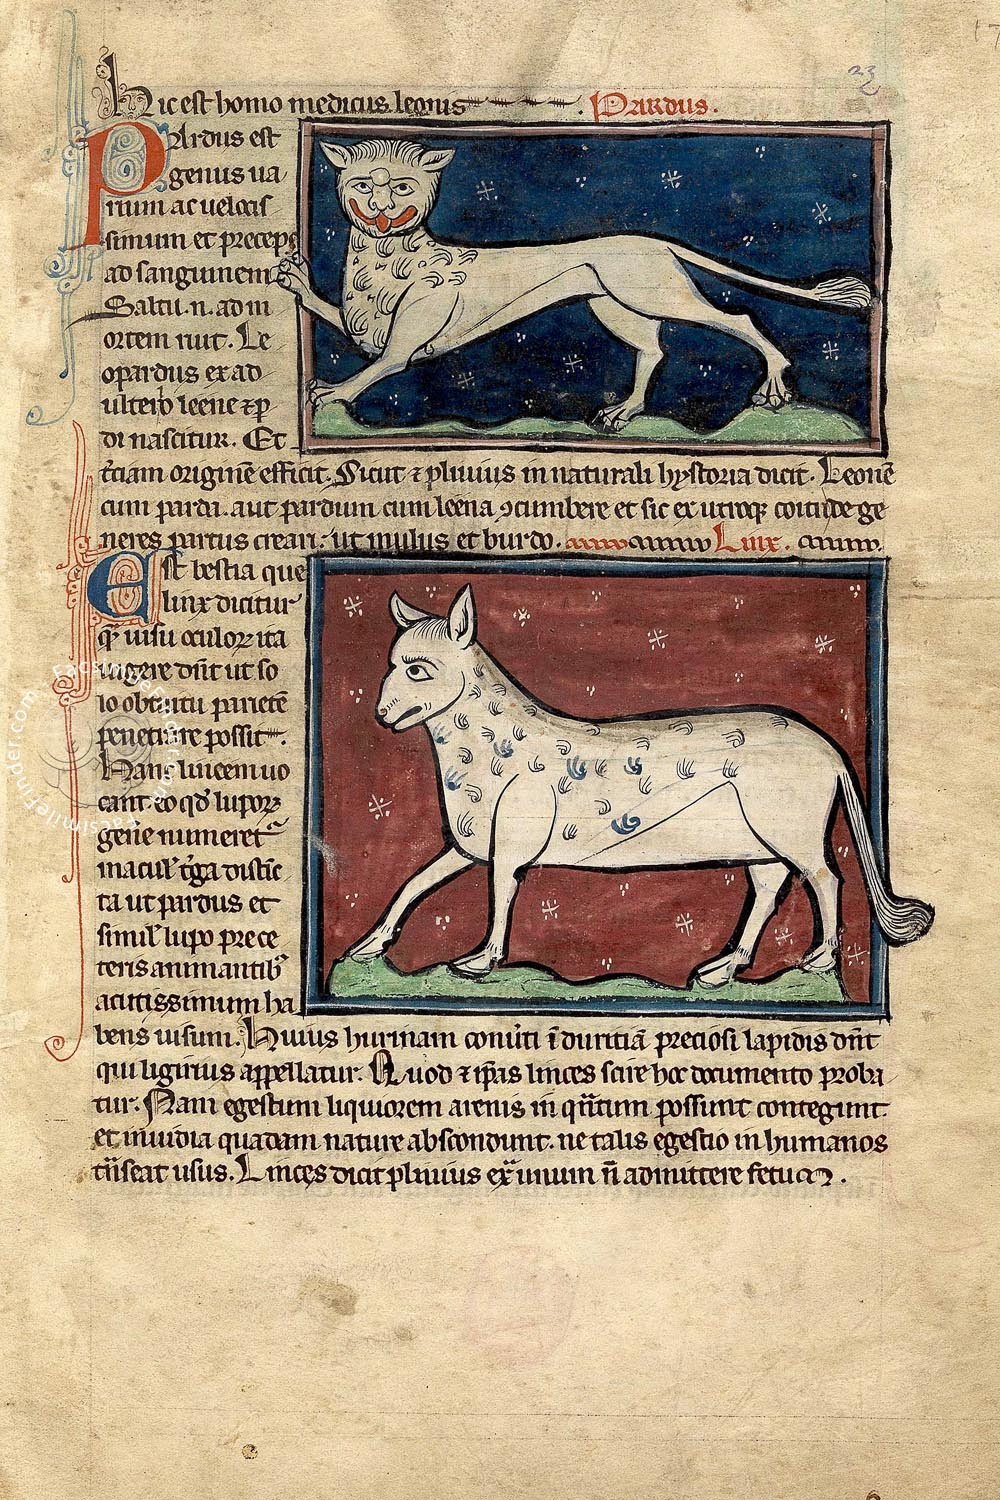 Westminster Bestiary, MS 22: Animals are depicted on red or blue backgrounds